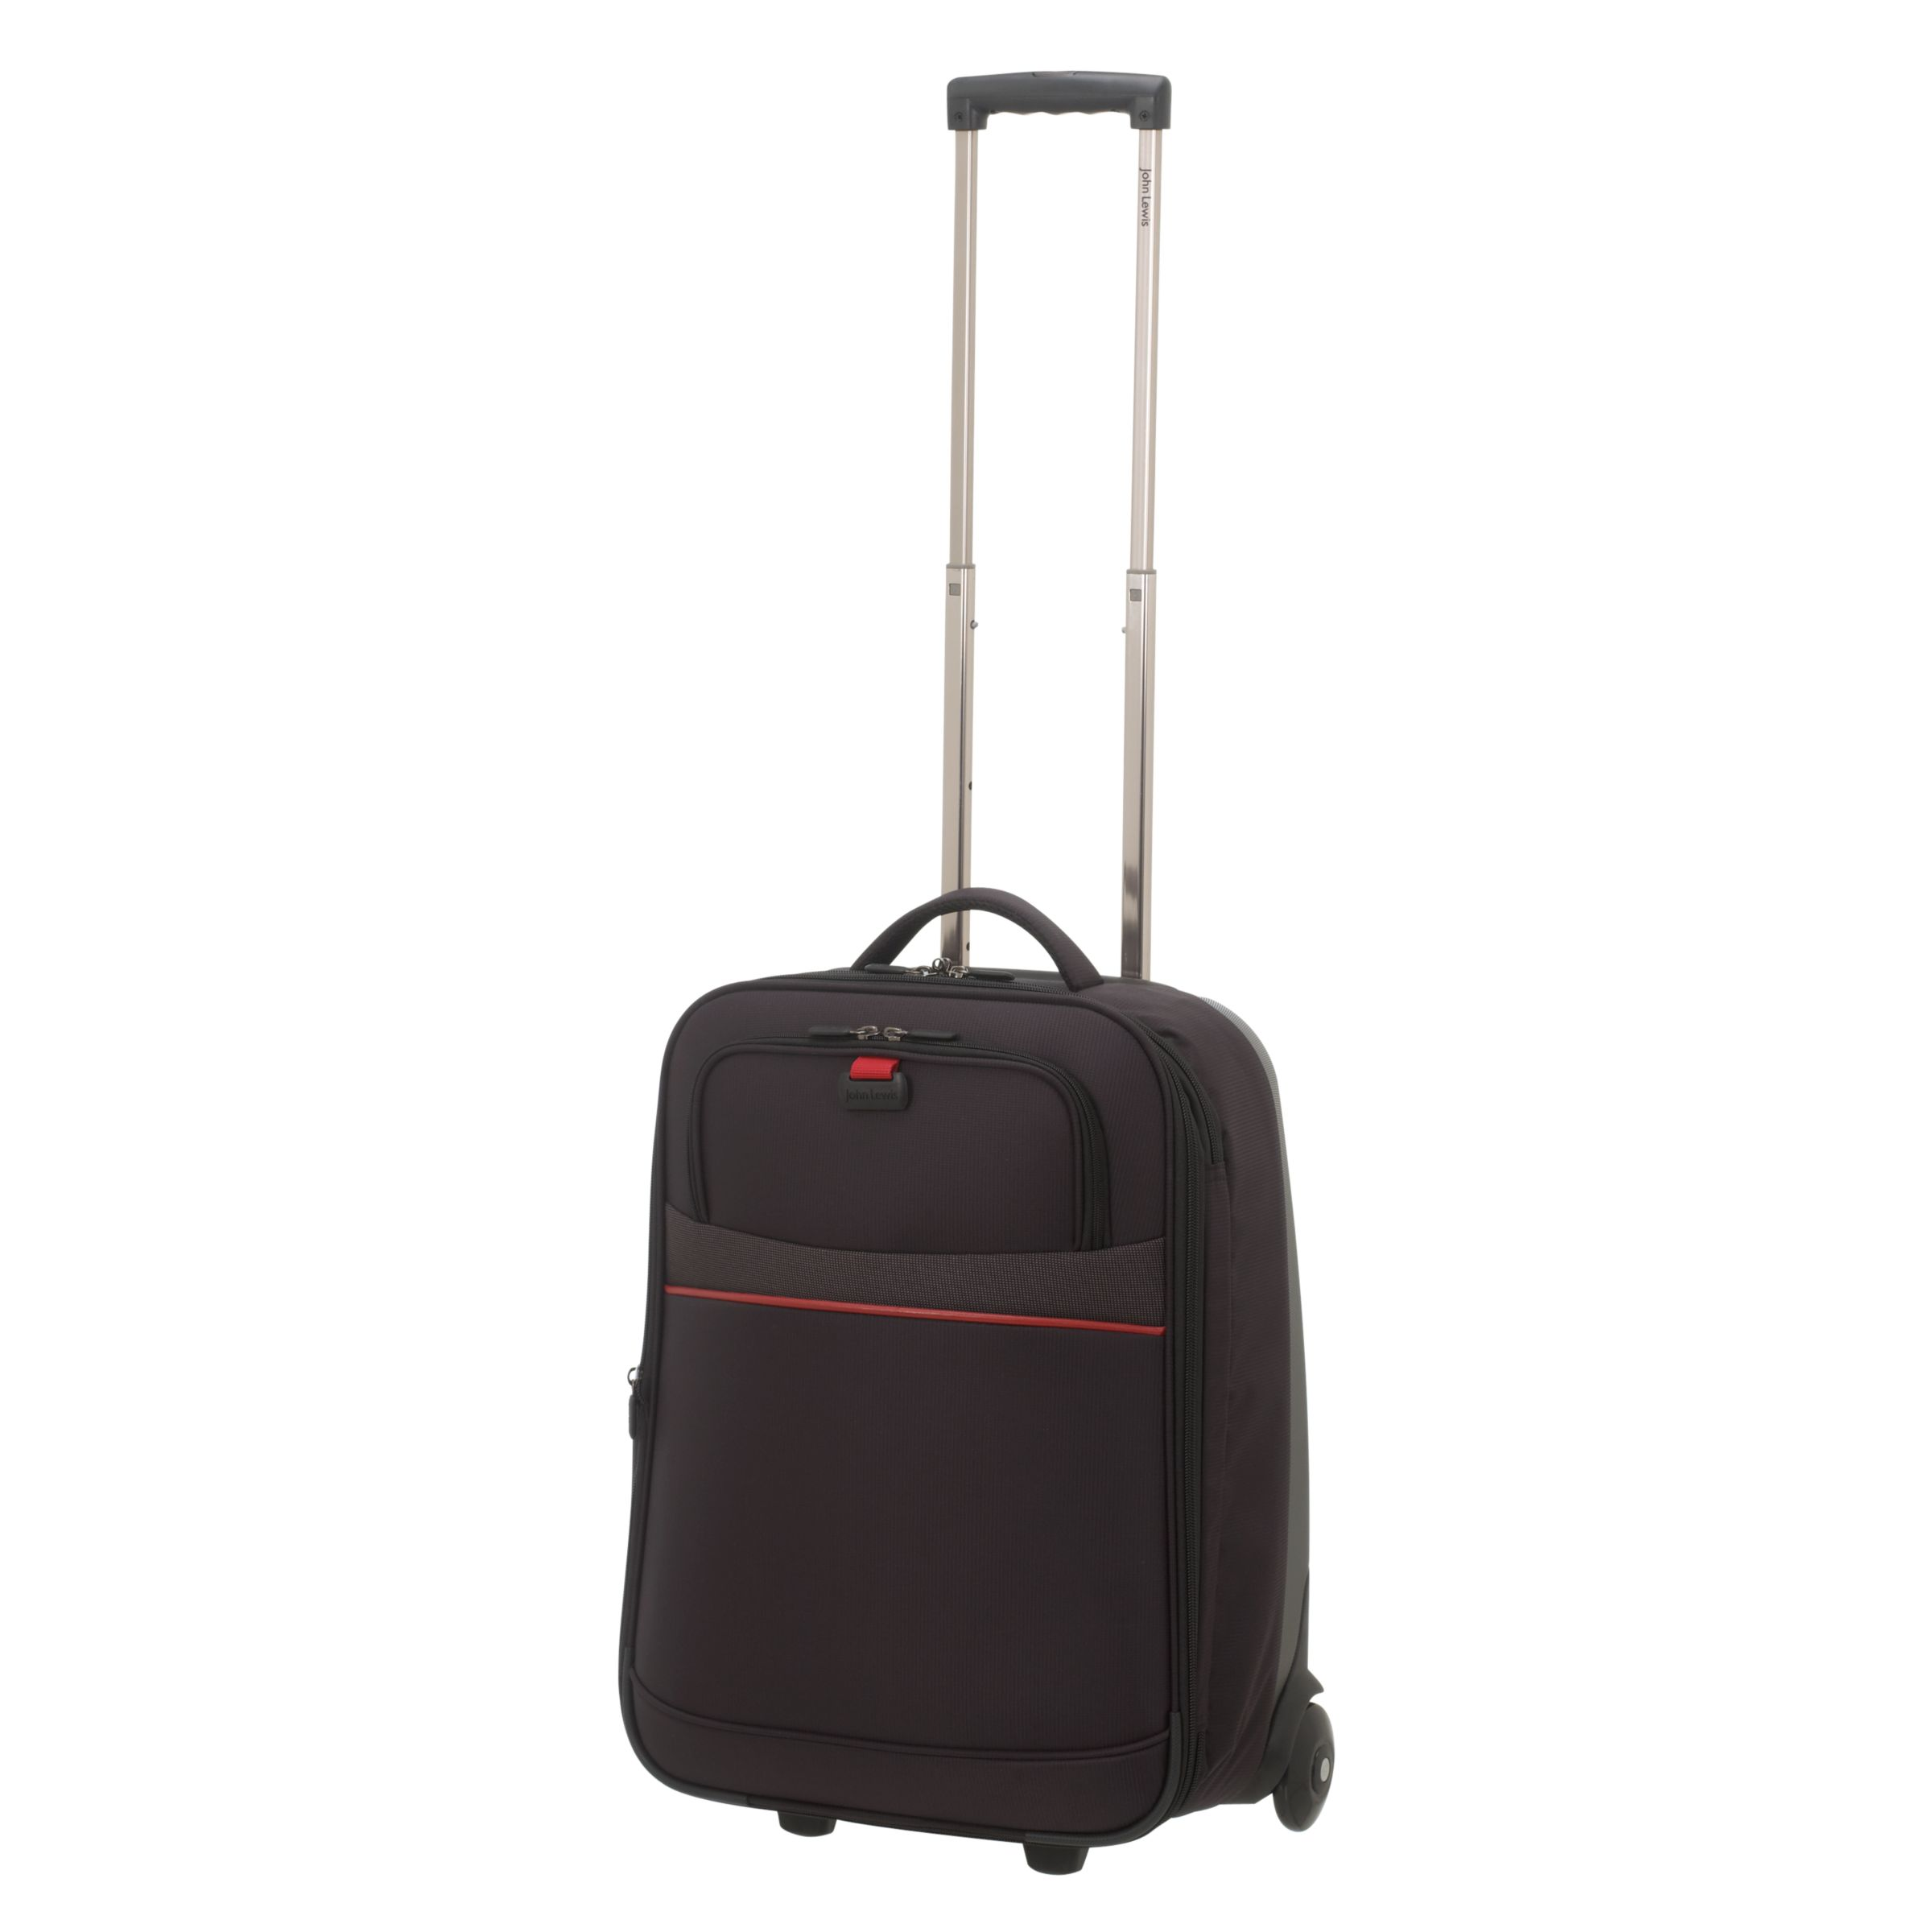 John Lewis Fusion 2-Wheel Suitcase, Black/Red, Cabin